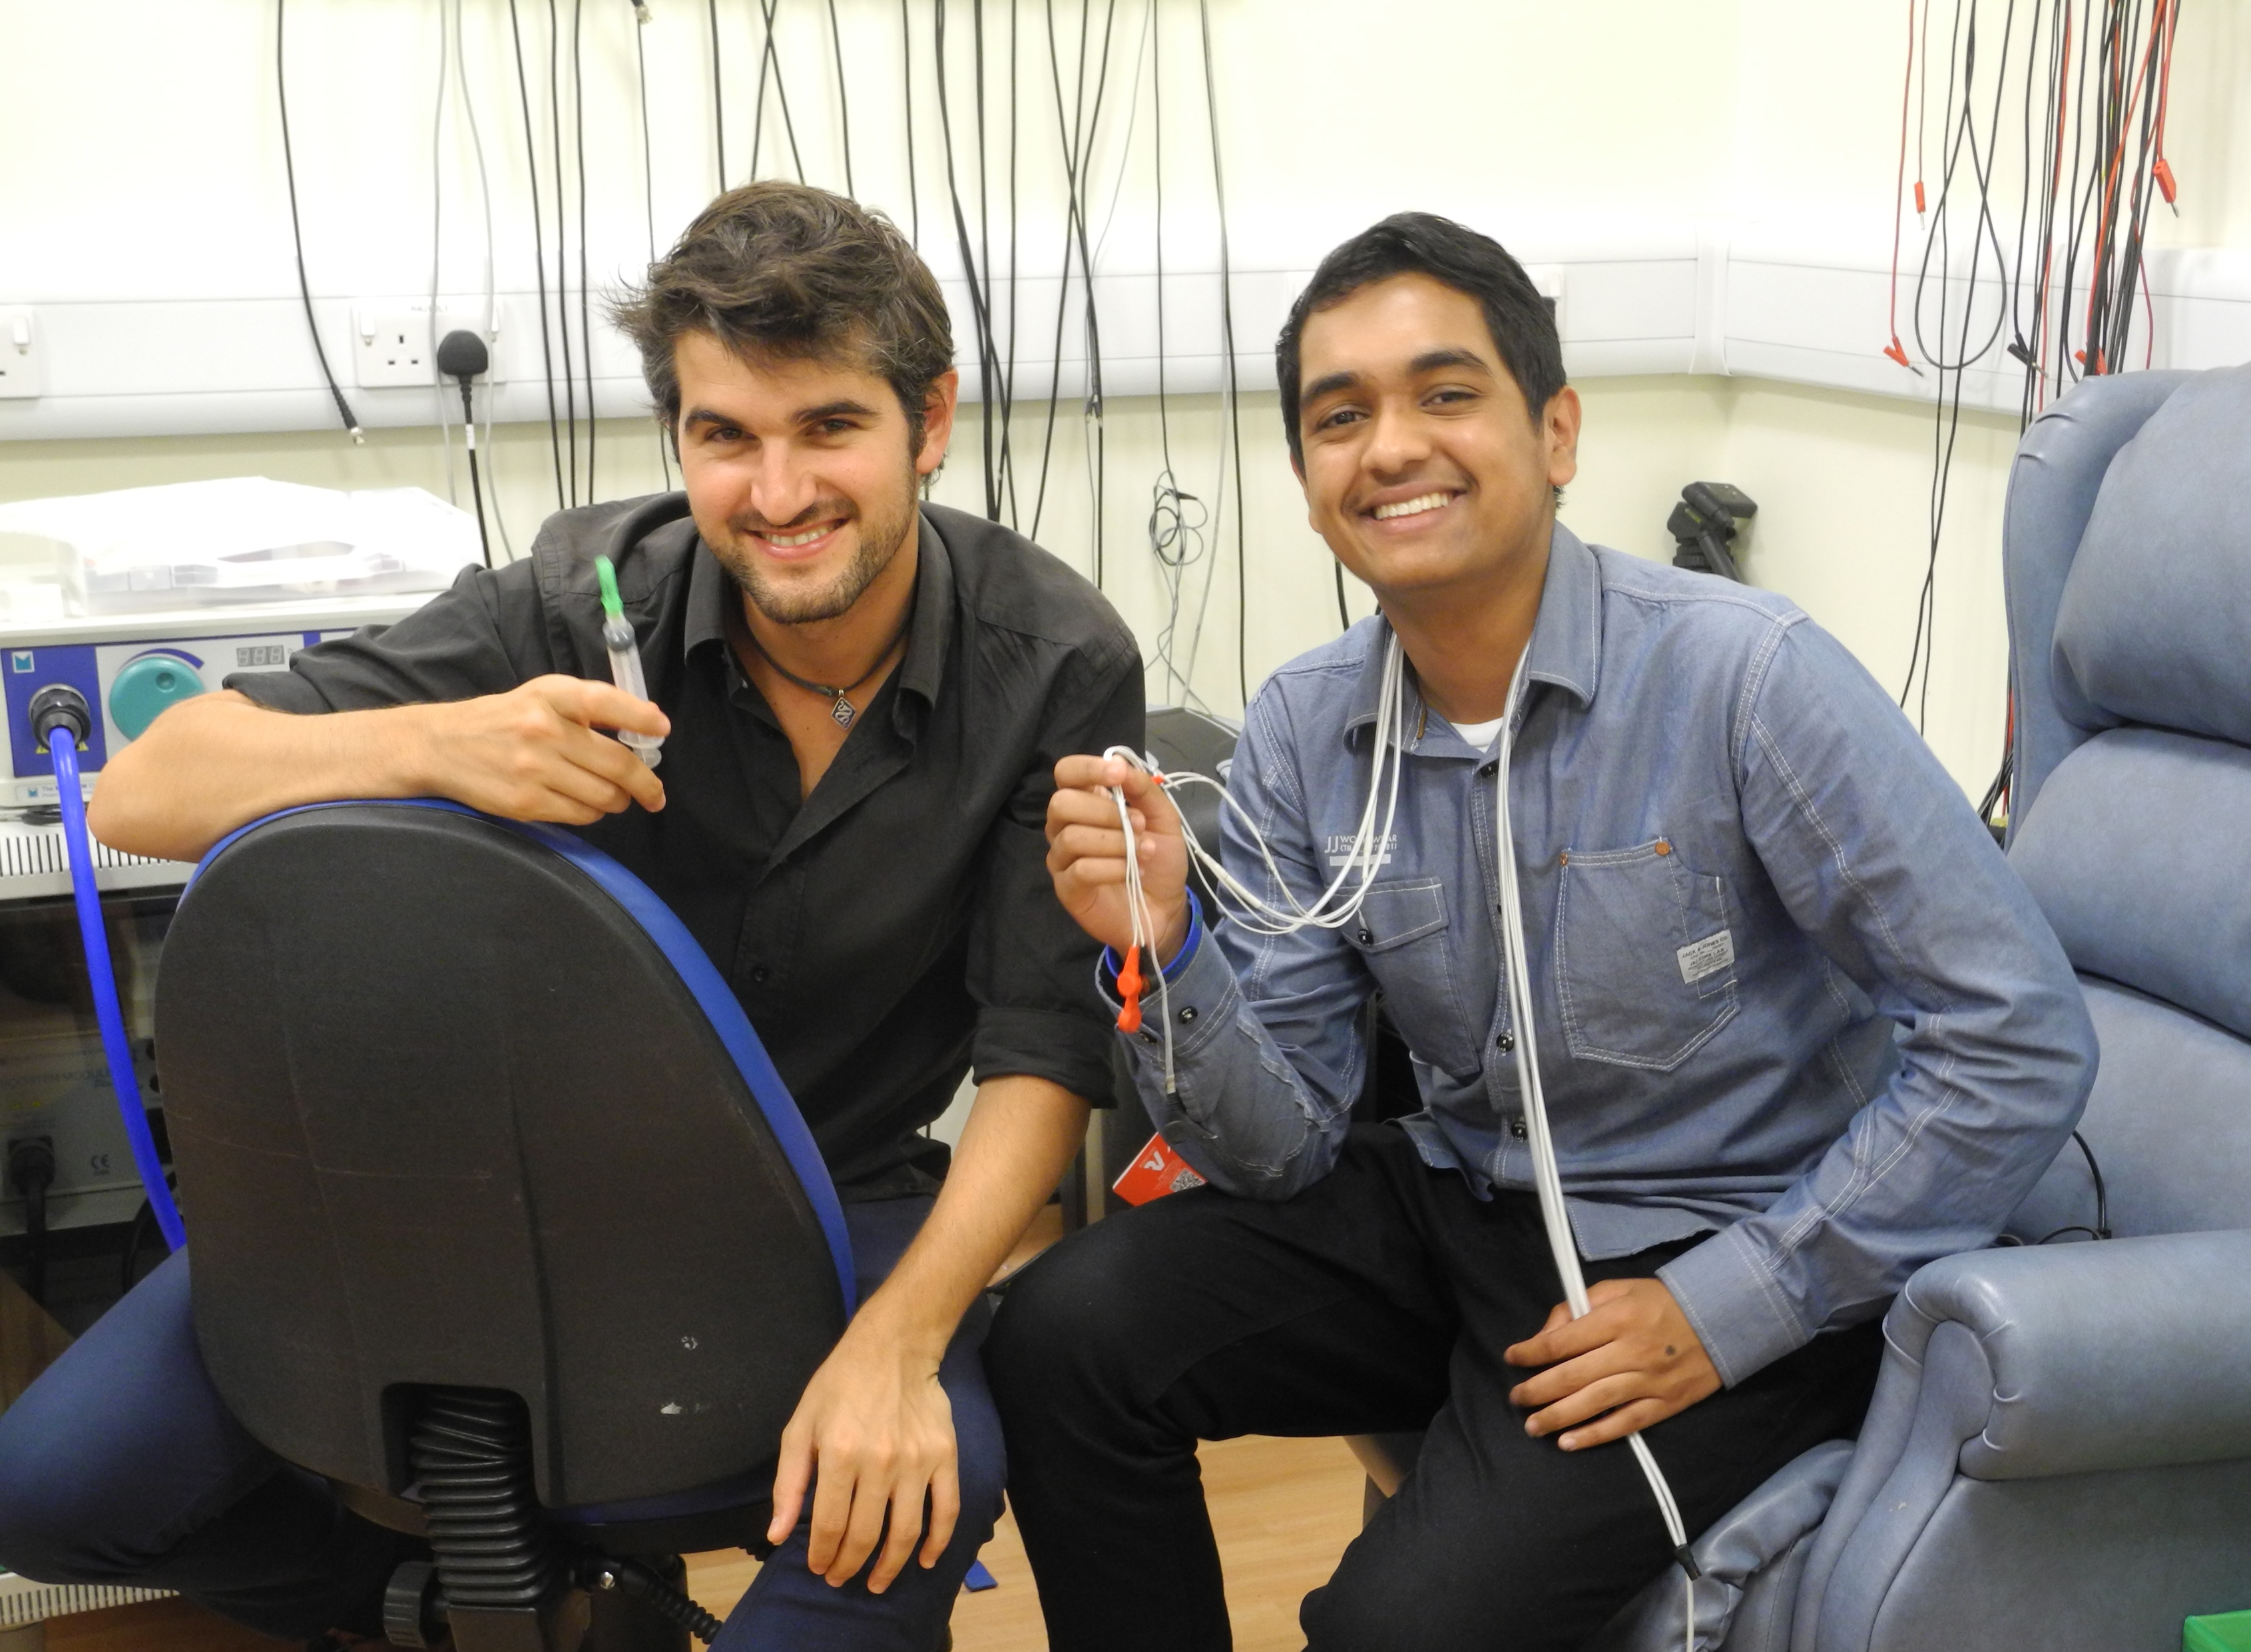 In2scienceUK placement student Yusuf, with his mentor, Unit scientist Dr Eduardo Martin Moraud.